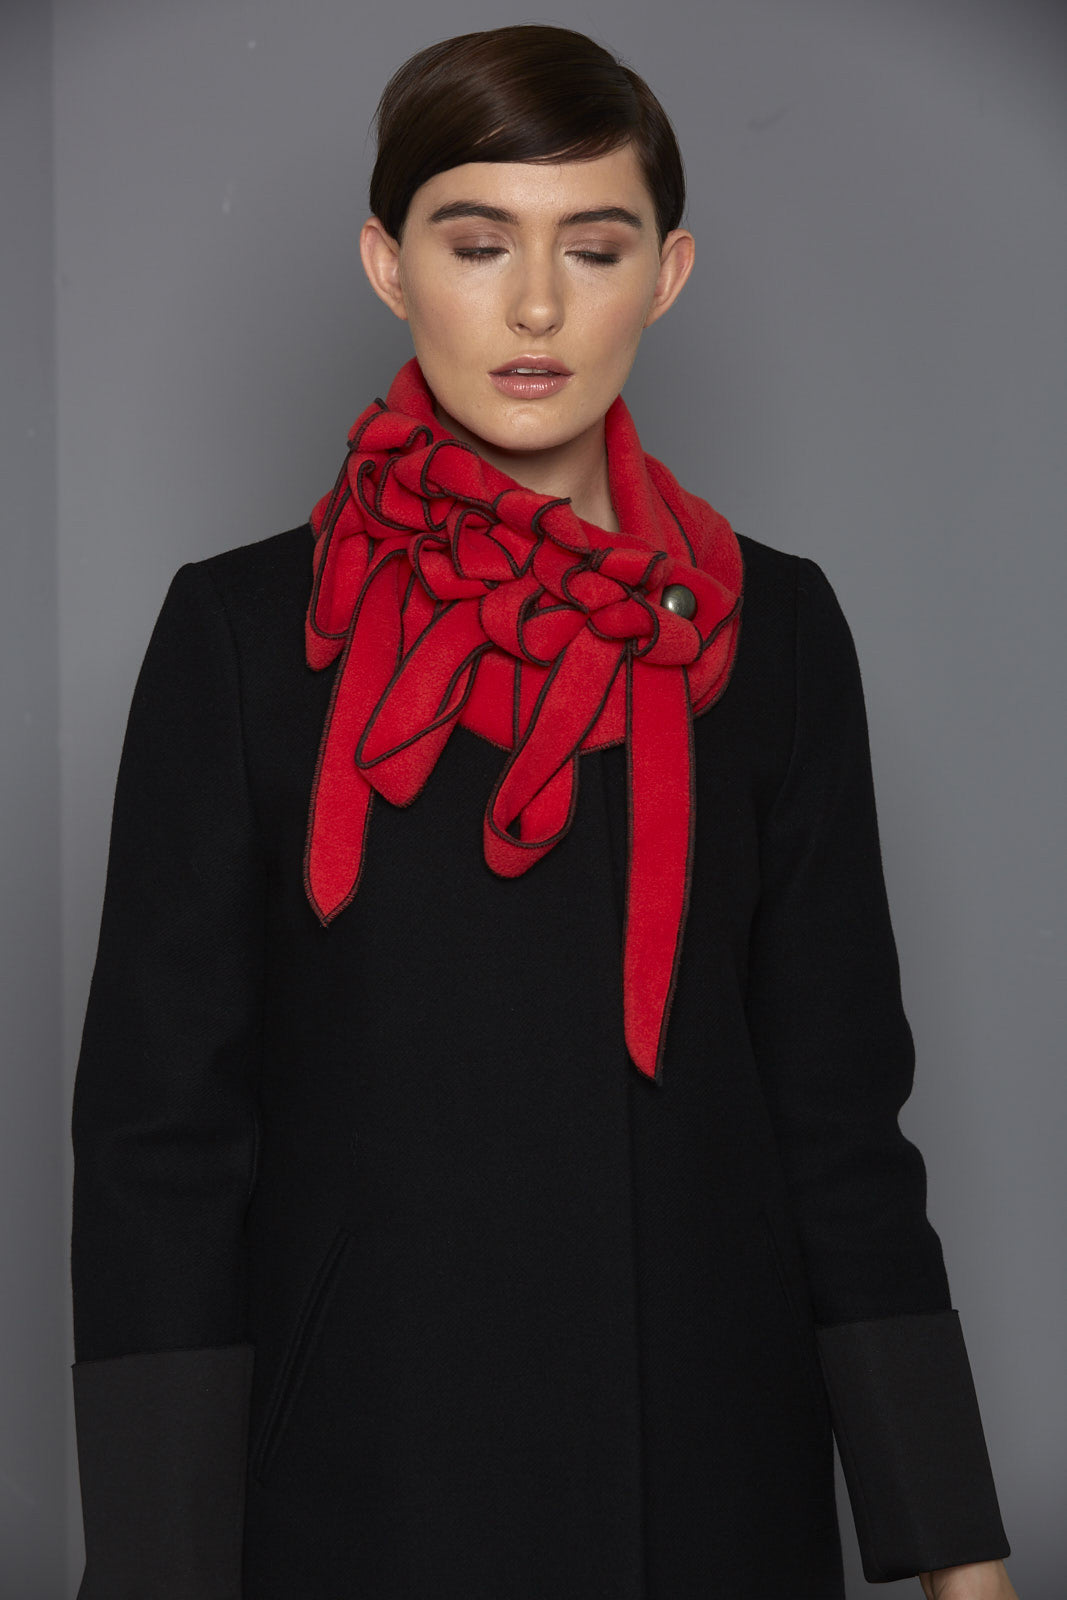 bright red scarf with black stitching